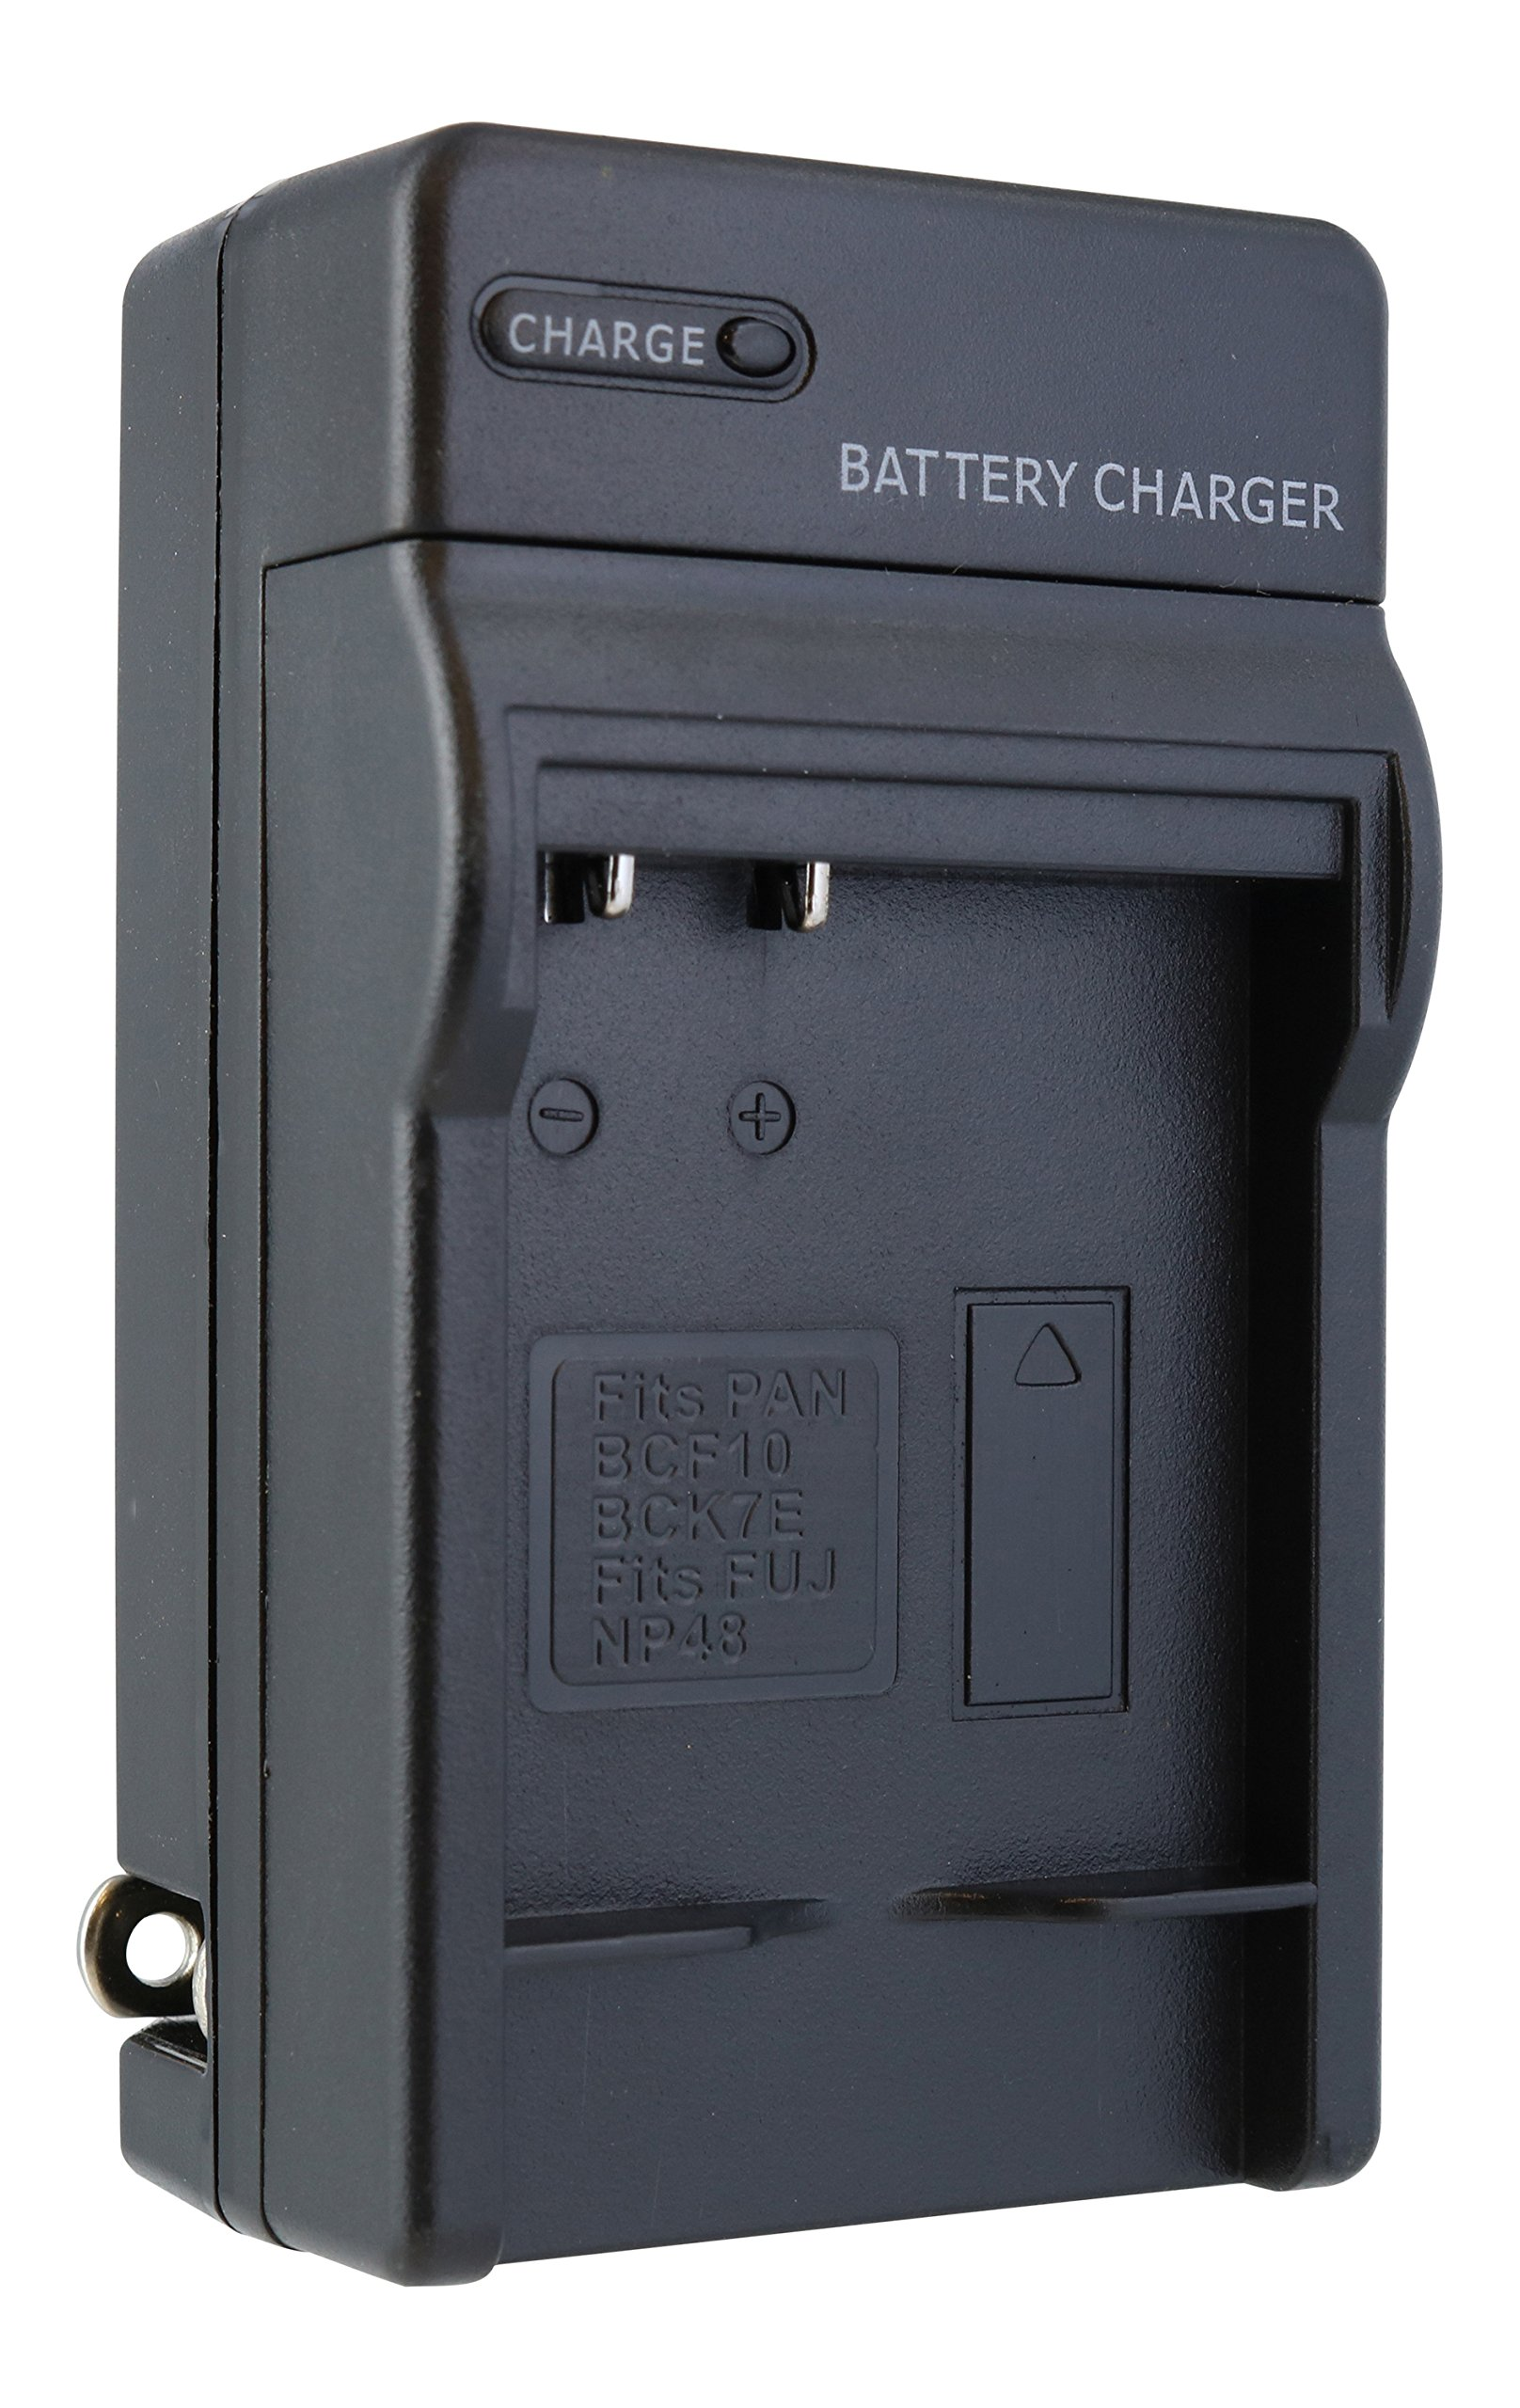 TechFuel Battery Charger Kit for Panasonic Lumix DMC-FP8 Camera - For Home, Car and Travel Use